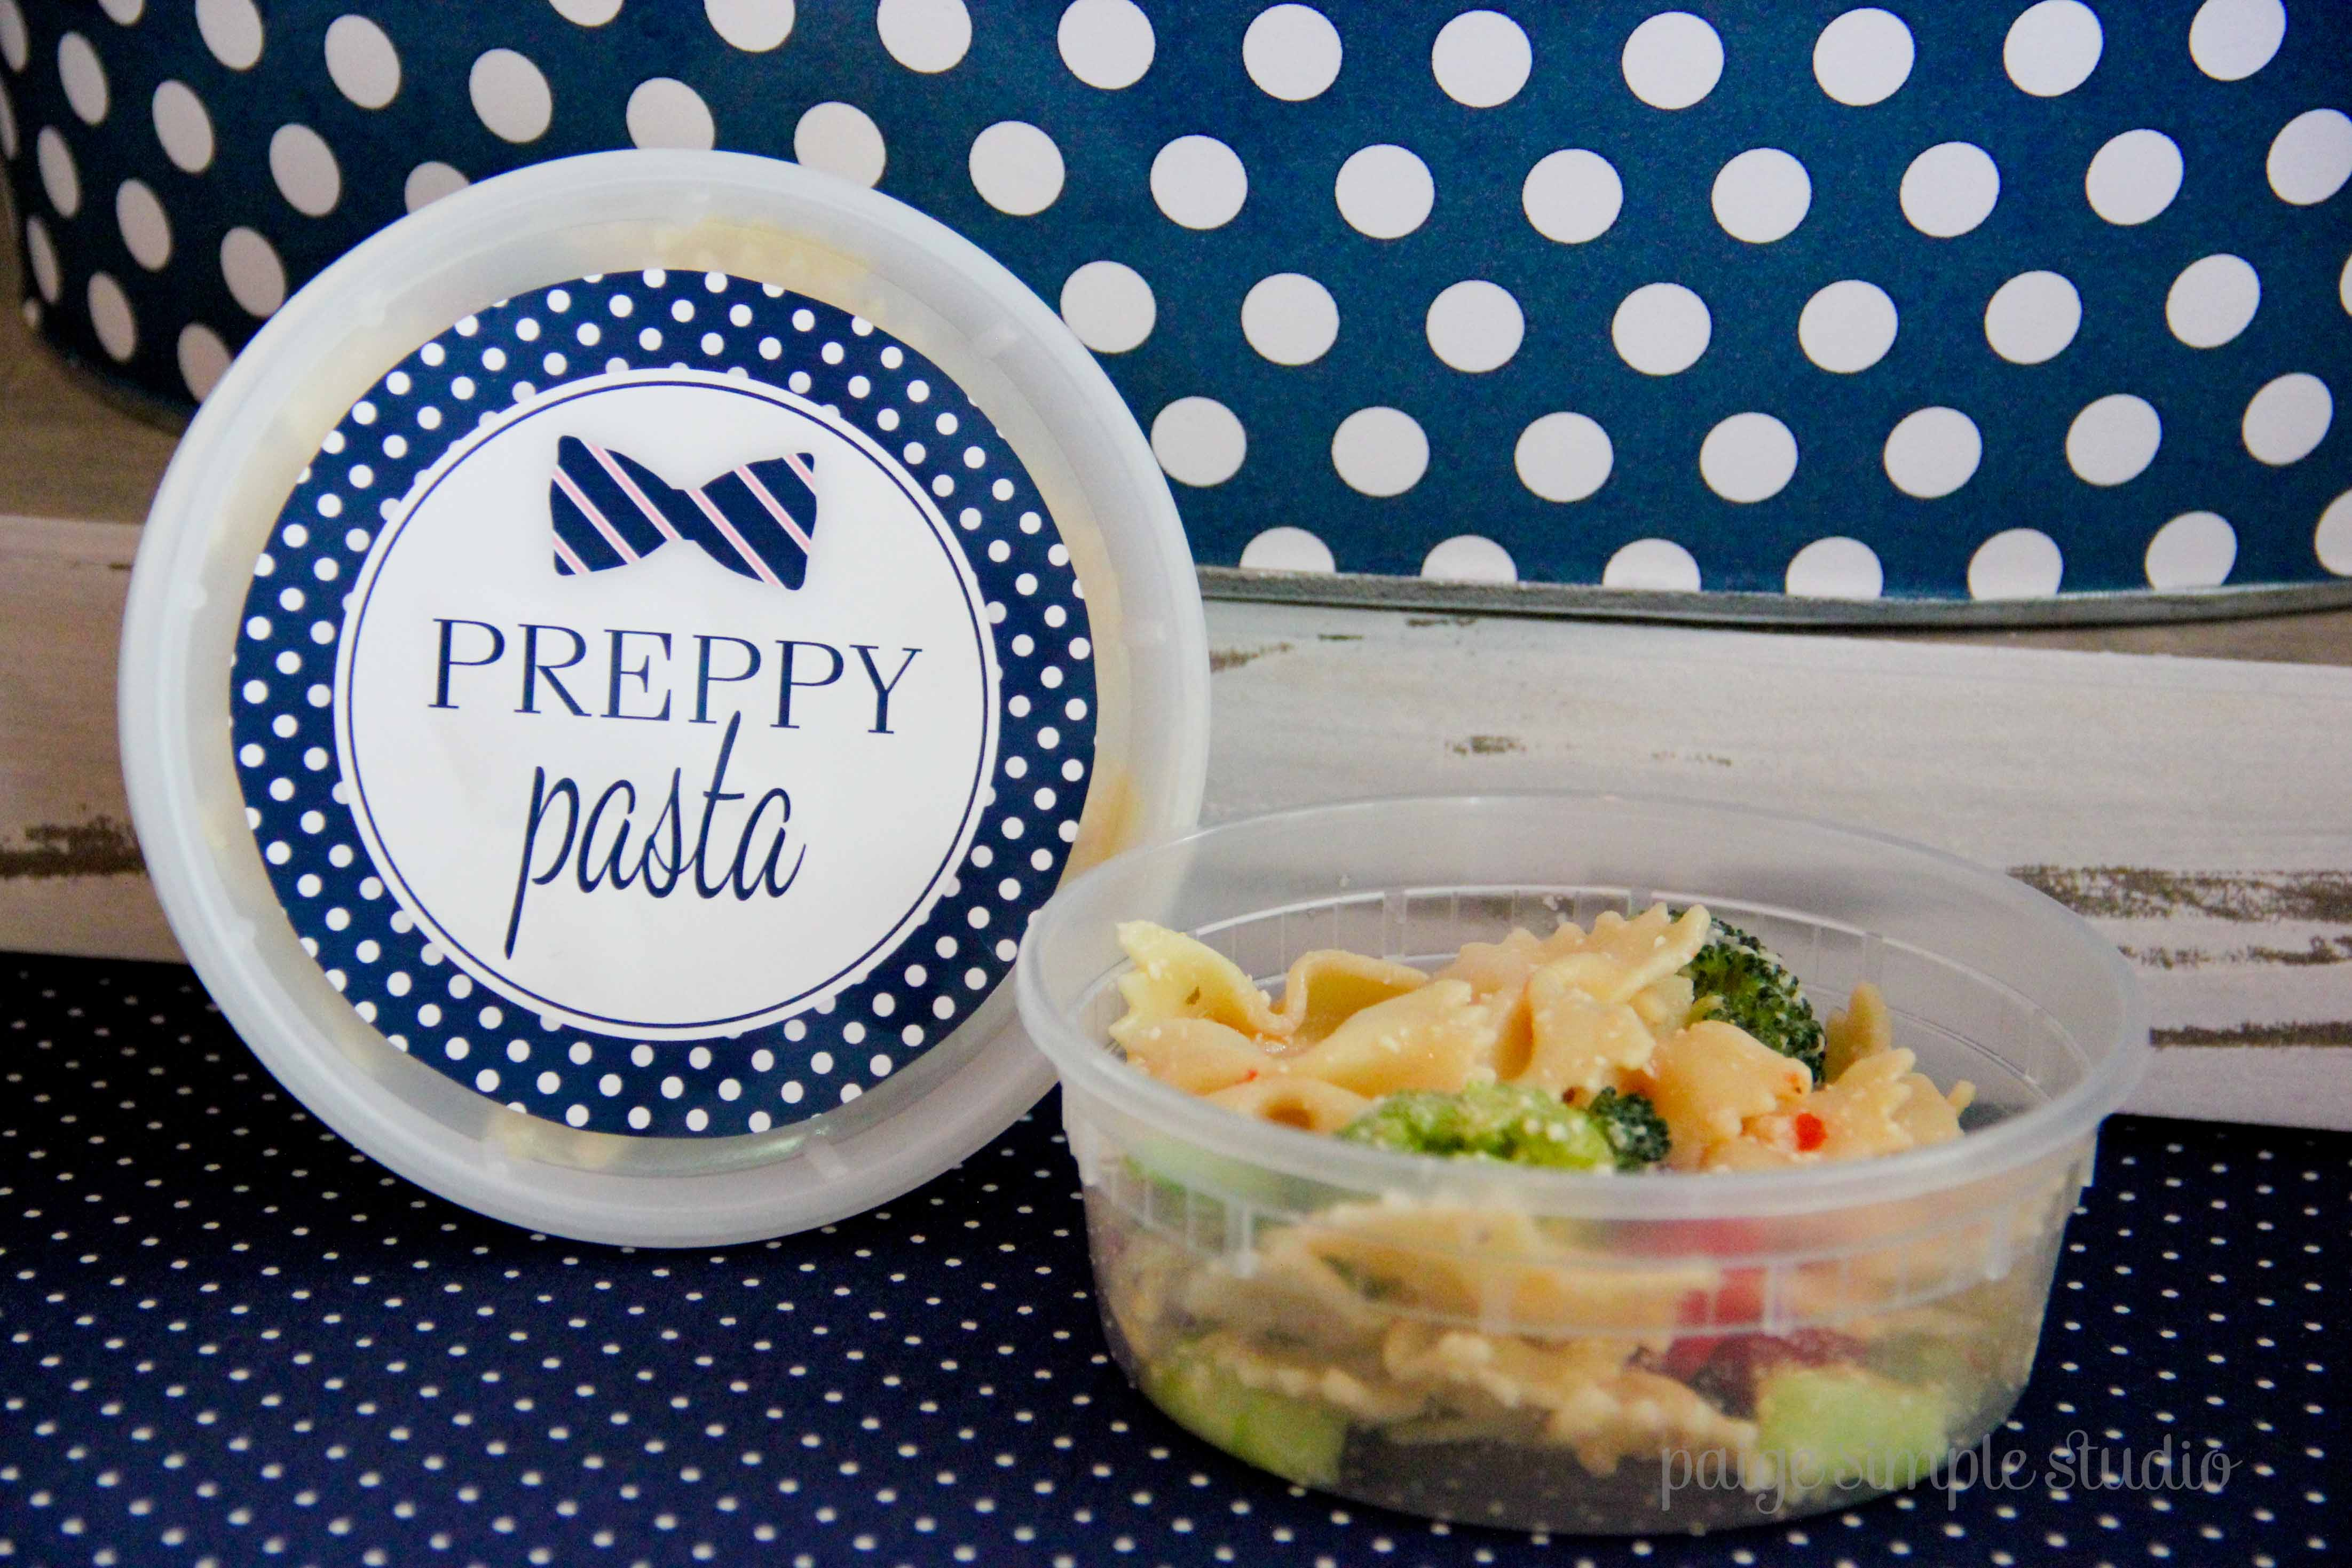 Adorable Preppy Pasta!